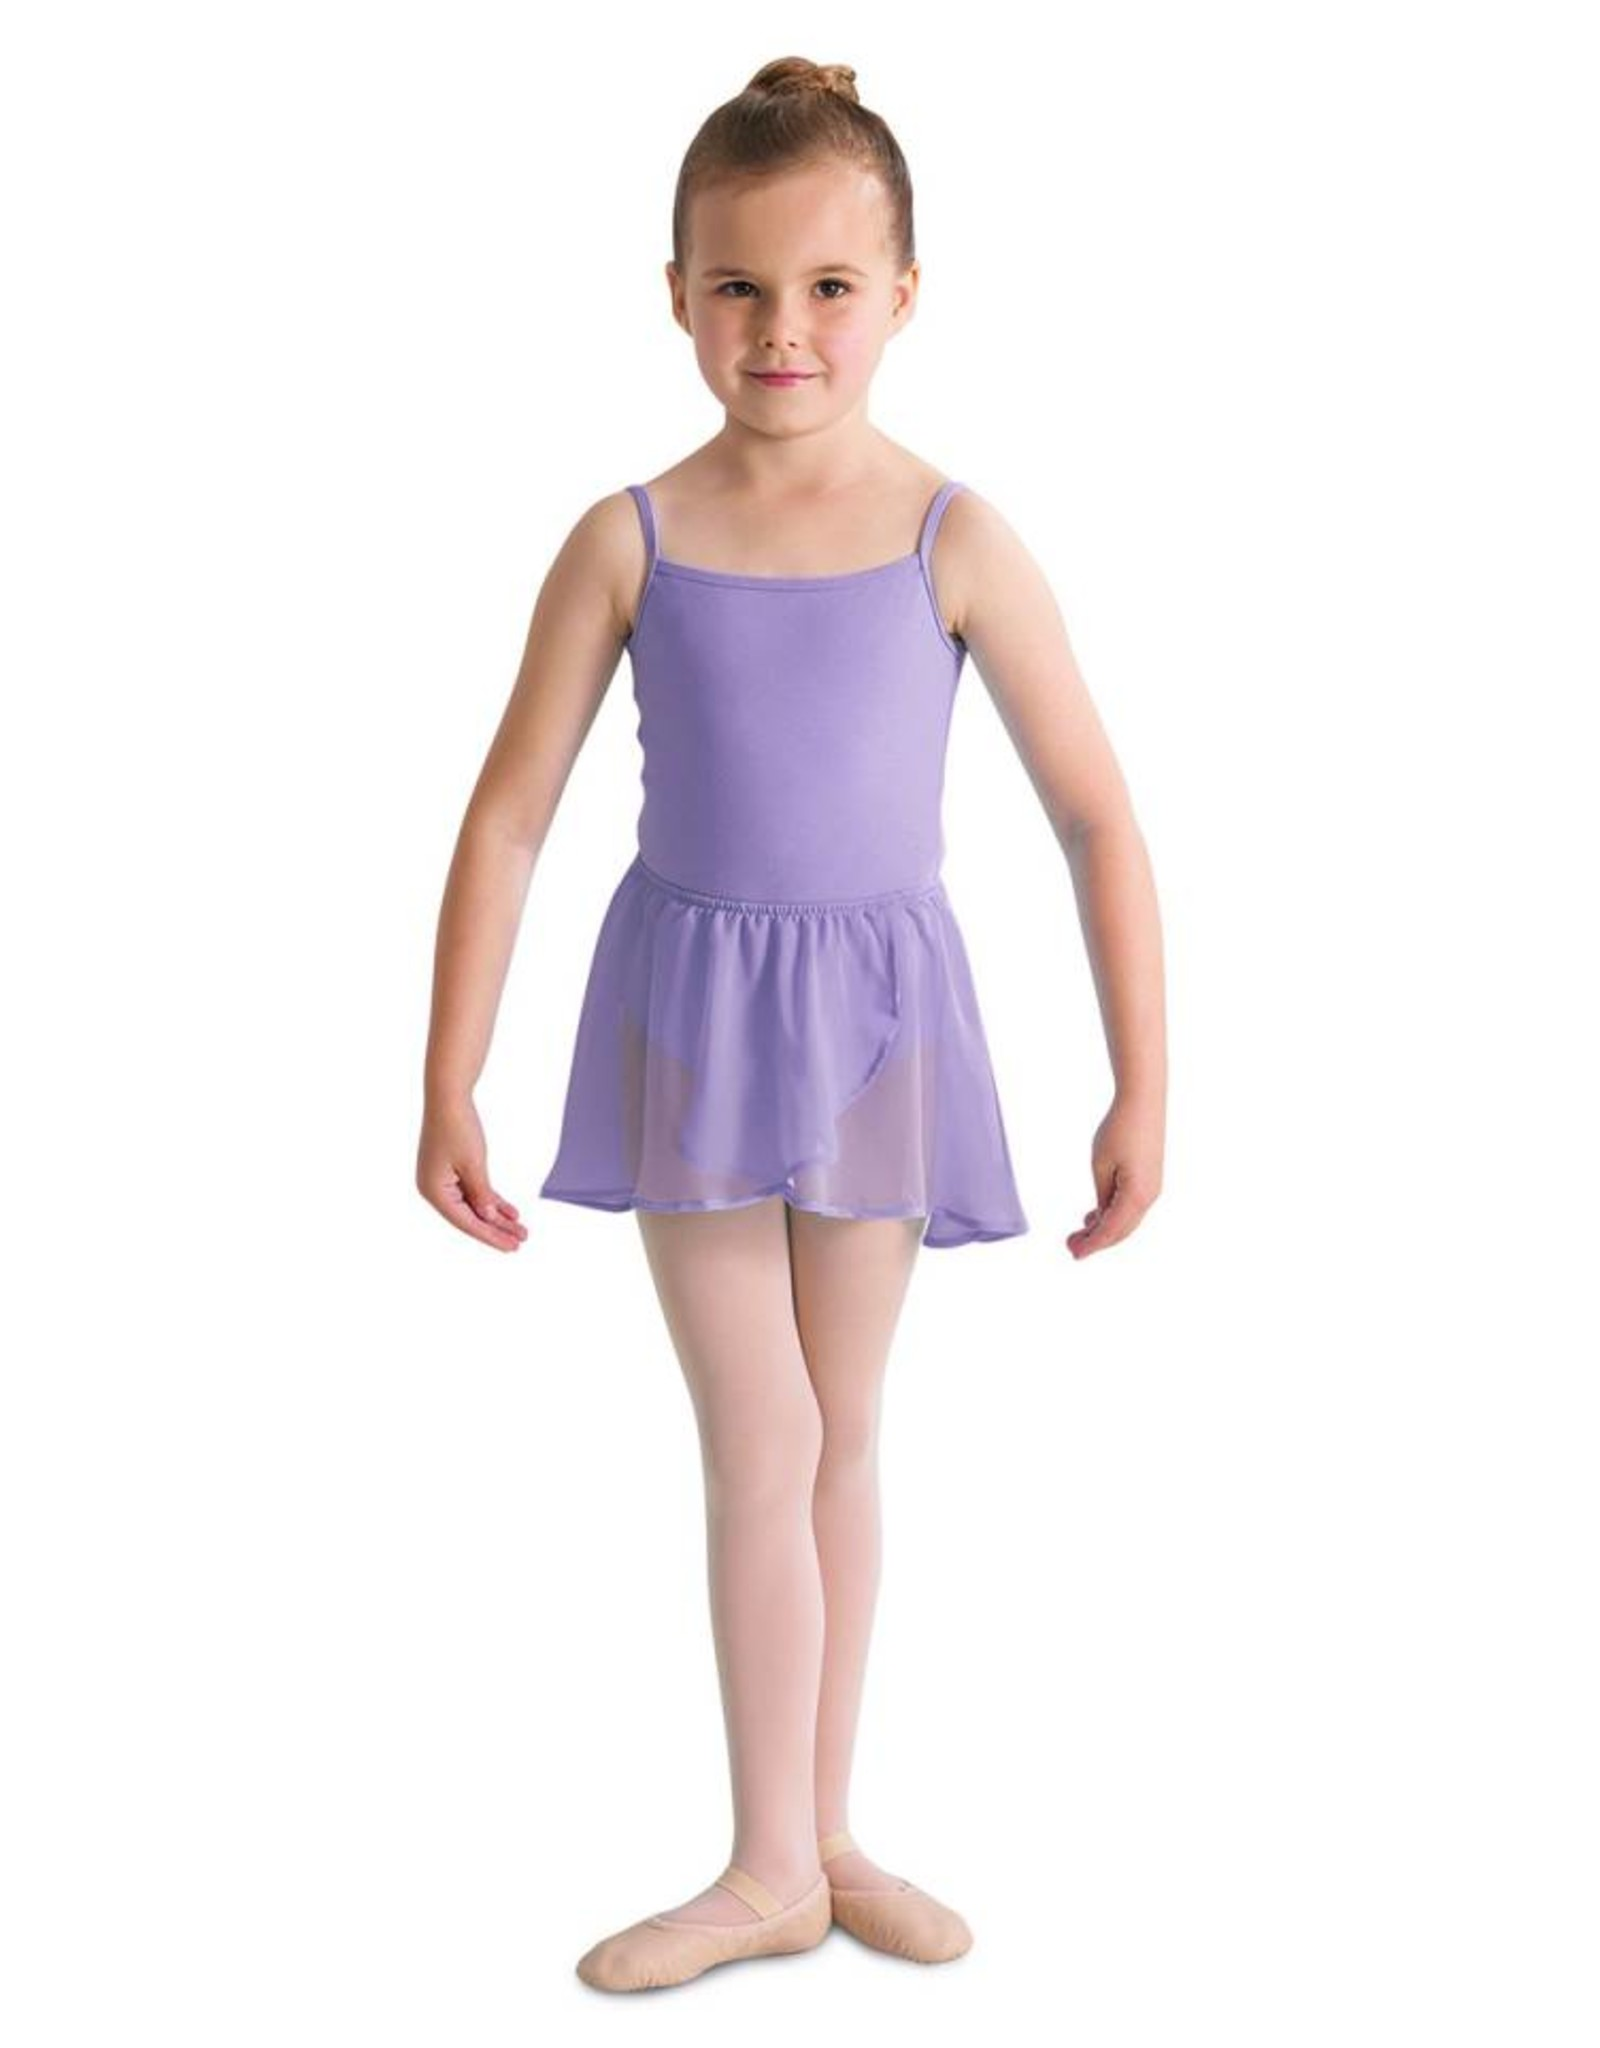 Bloch Bloch Barre Wrap Ballet Skirt - CR5110